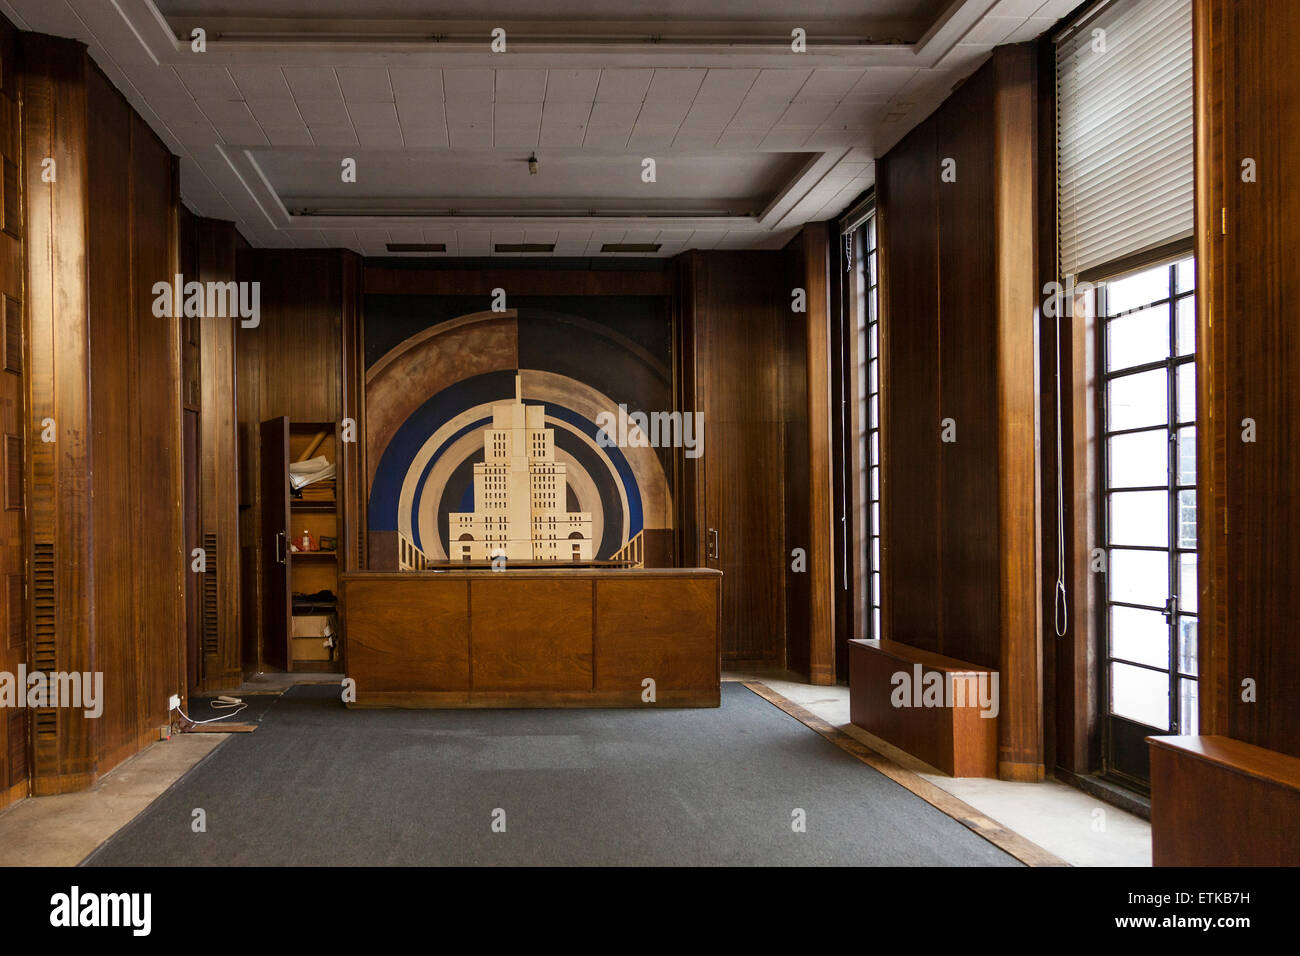 art deco interior architecture stock photos & art deco interior